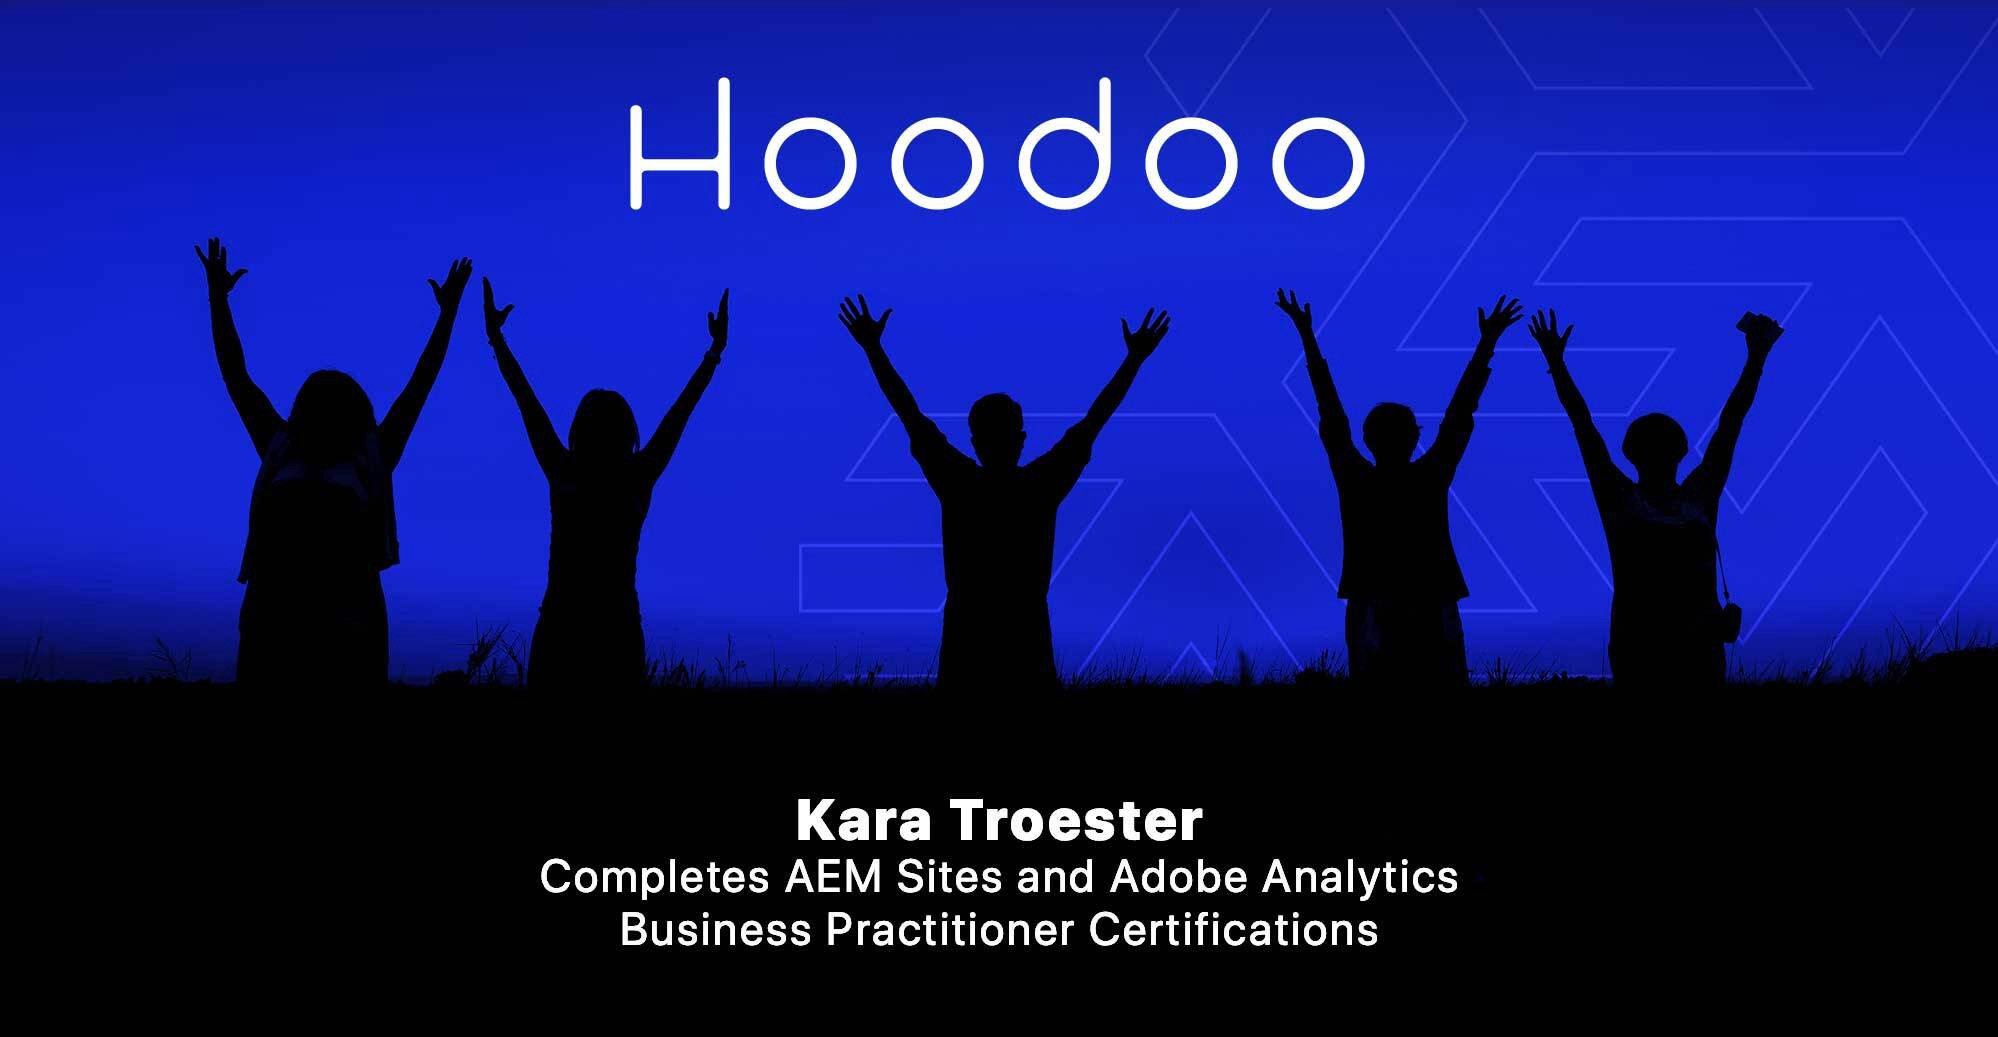 Kara Troester Completes AEM Sites and Adobe Analytics Business Practitioner Certifications